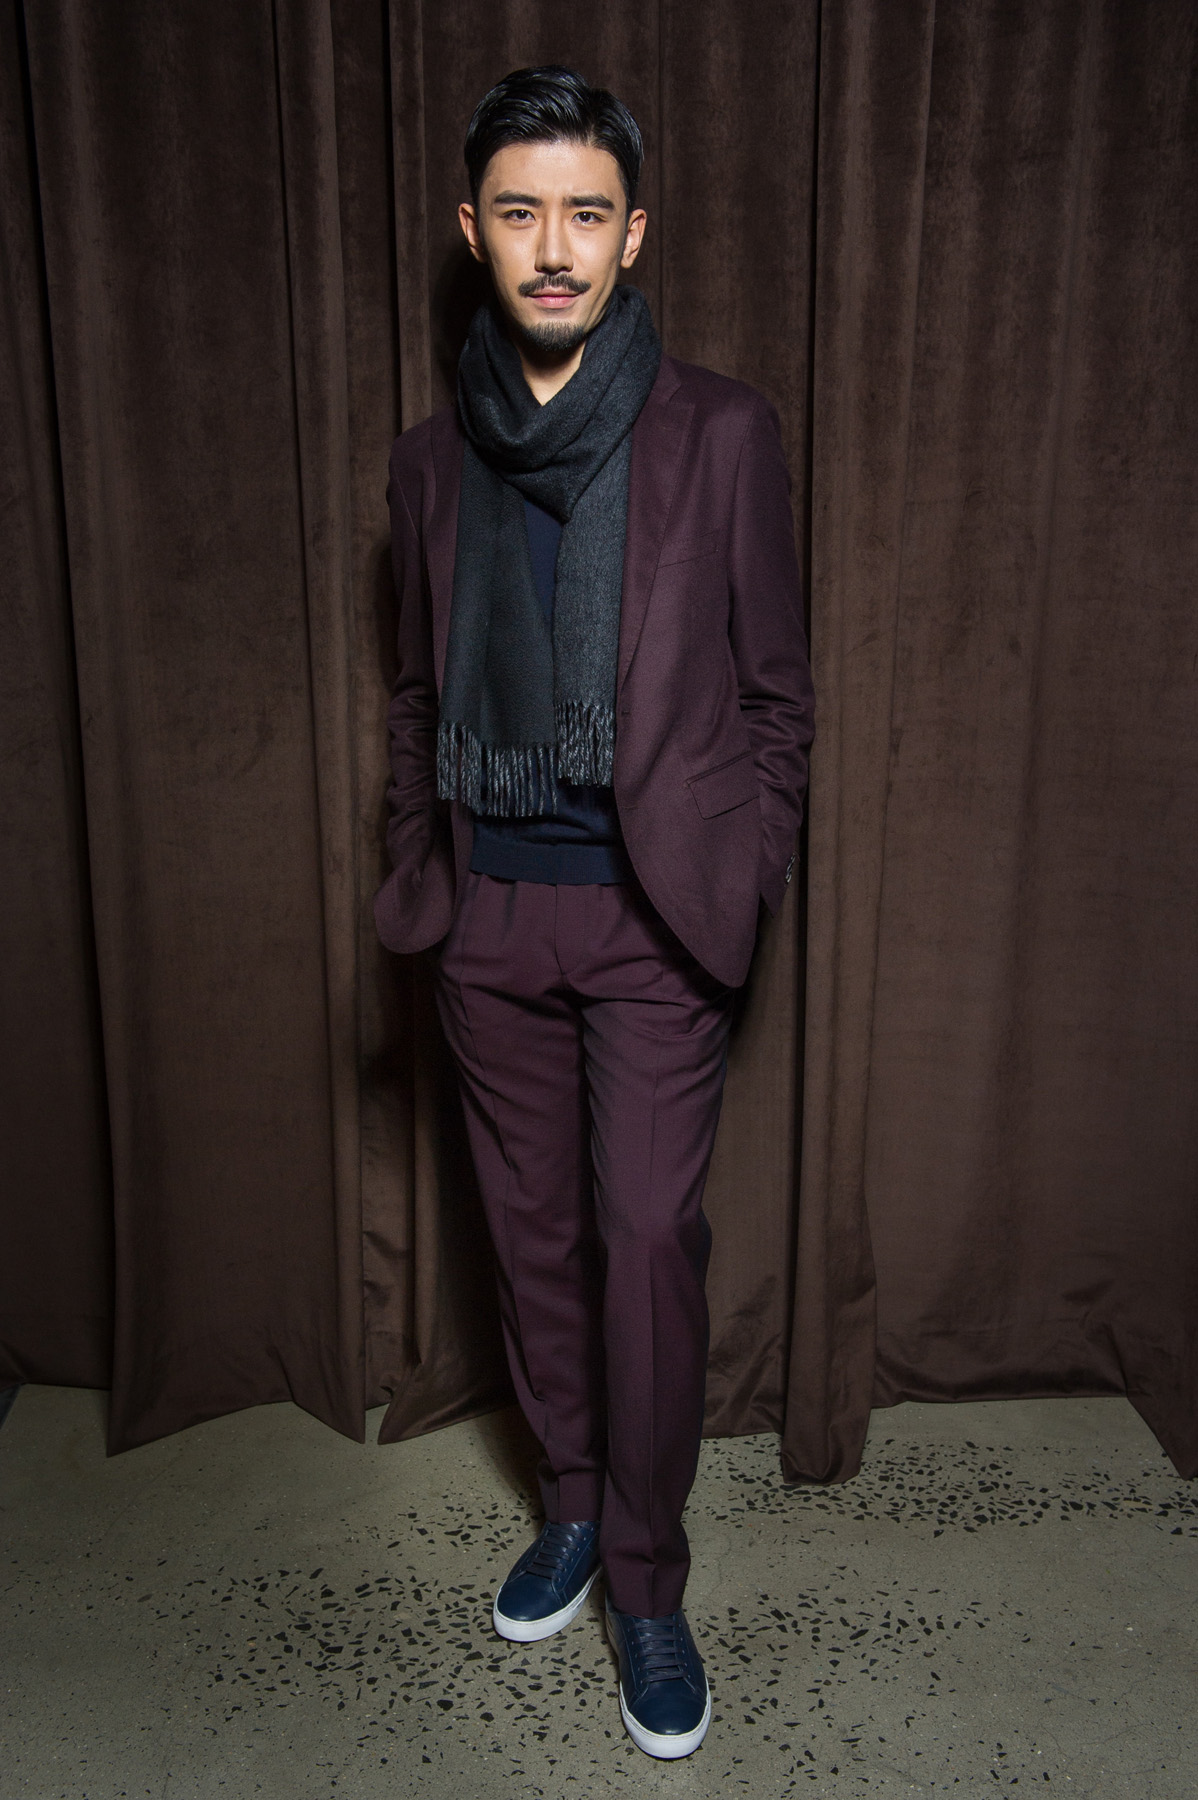 Nik Wang in HUGO BOSS at the BOSS Menswear Fall/Winter 2017 collection presentation